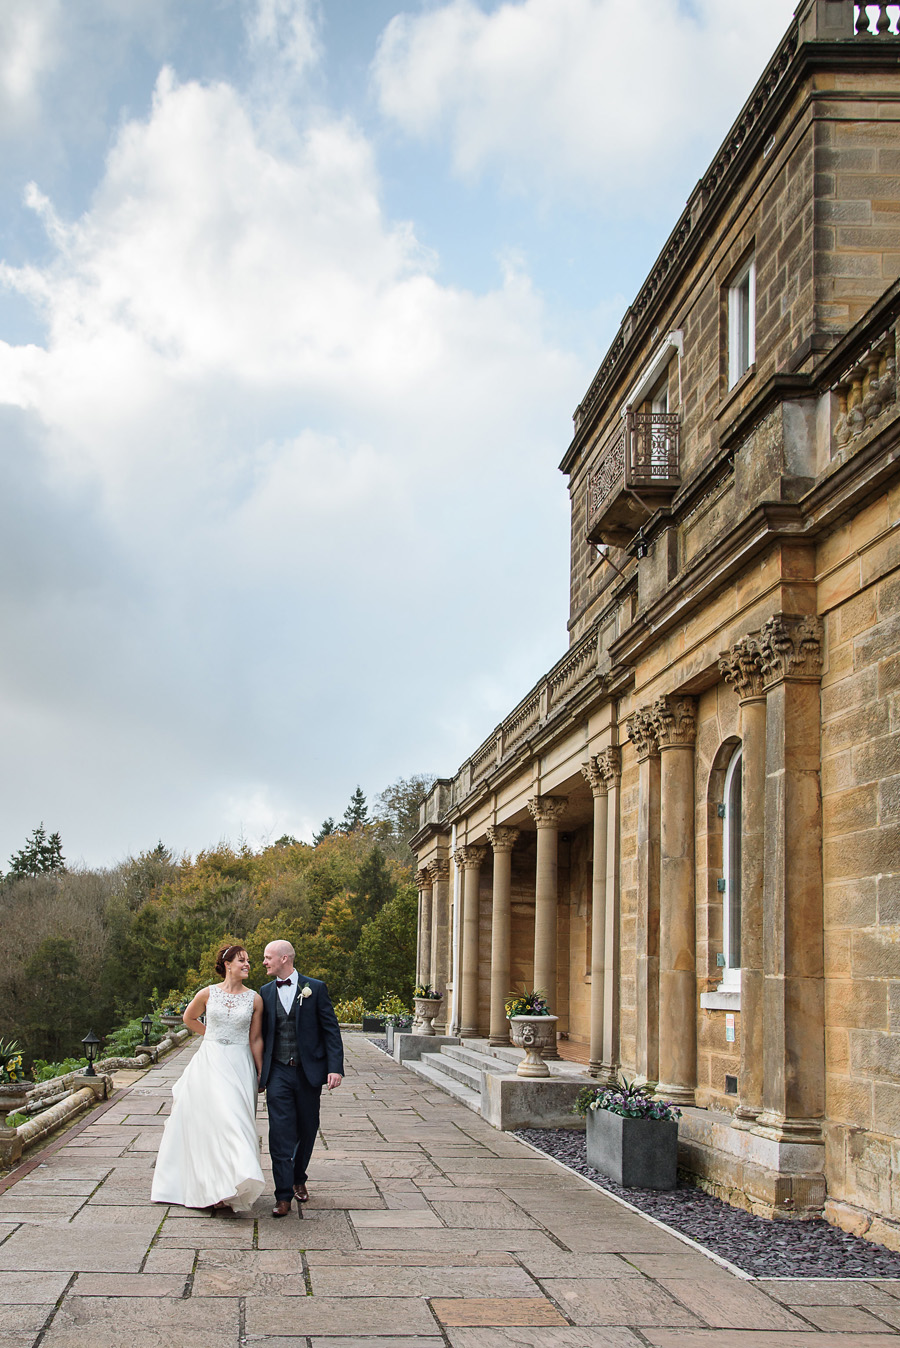 Stunning real wedding at Salomons Estate, images by Penny Young Photography (29)